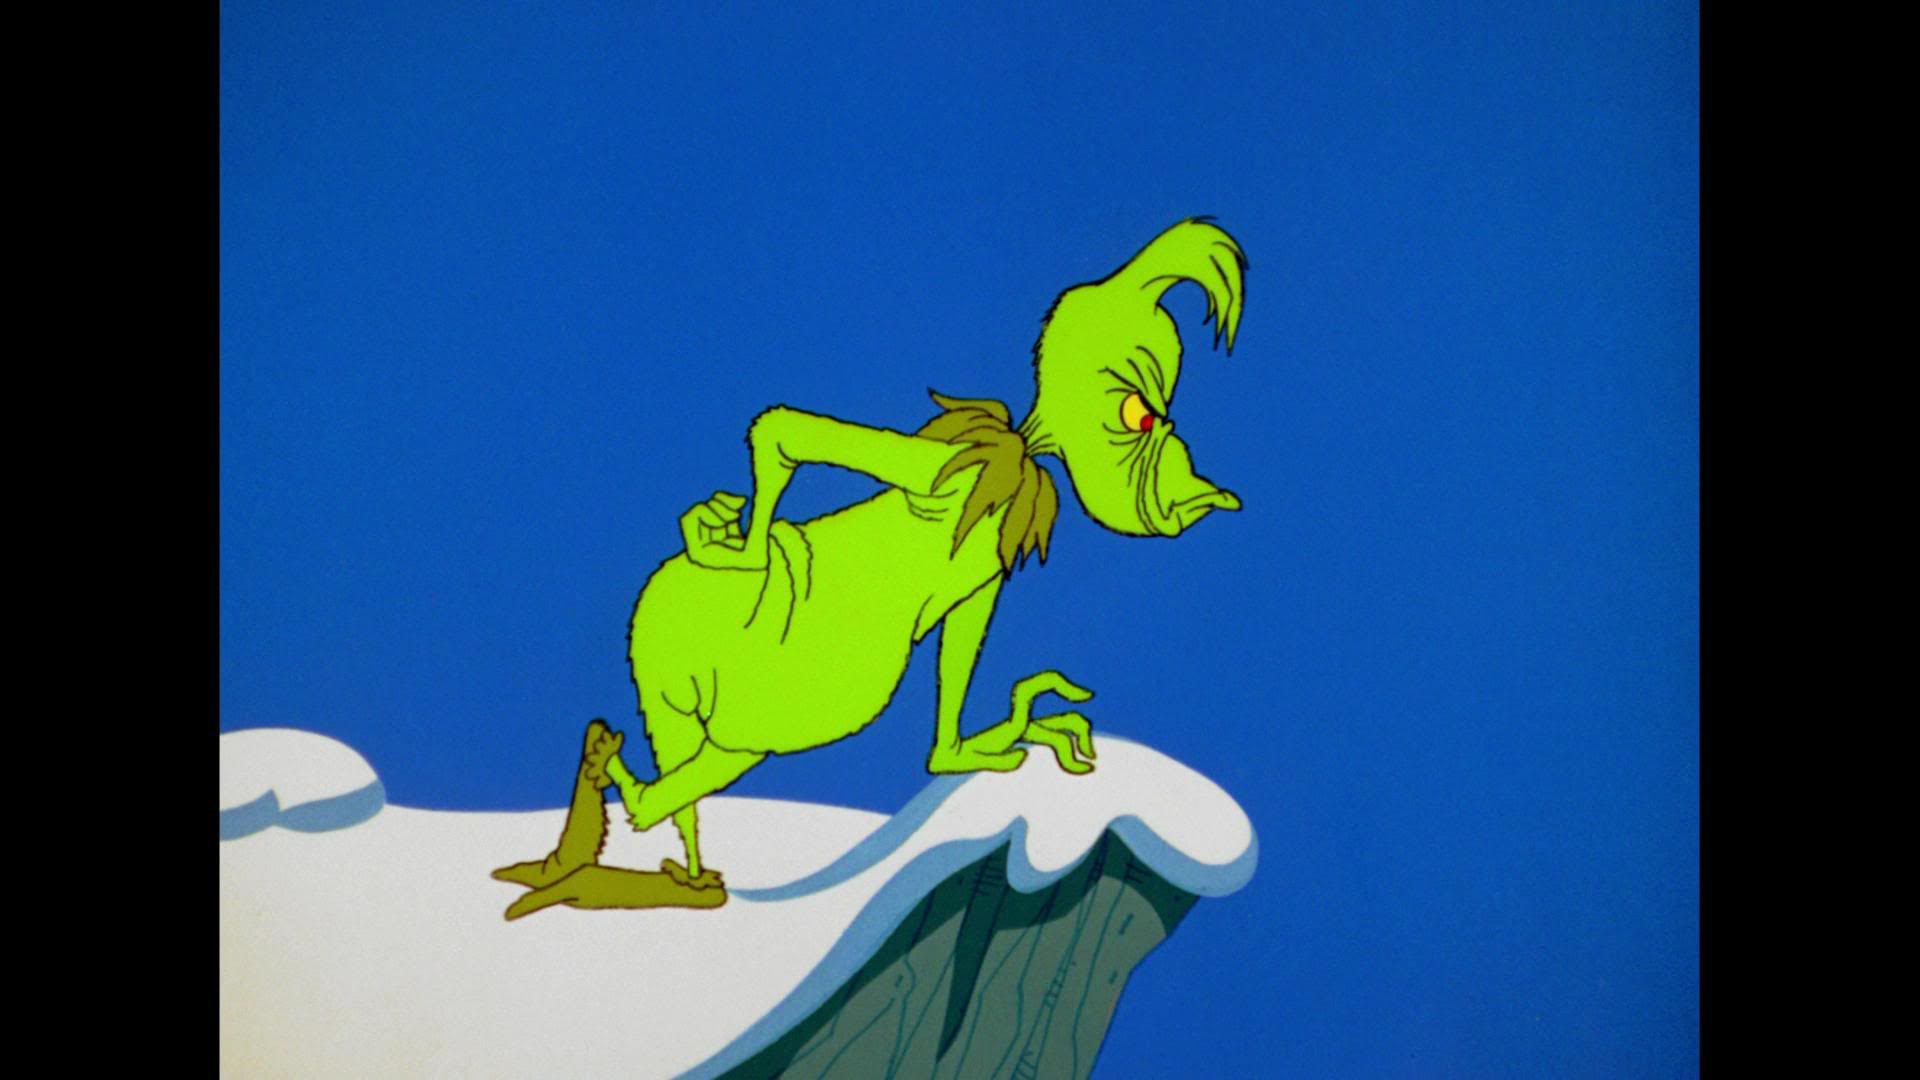 Download Free Cartoon Movies With Albums Christmas Grinch